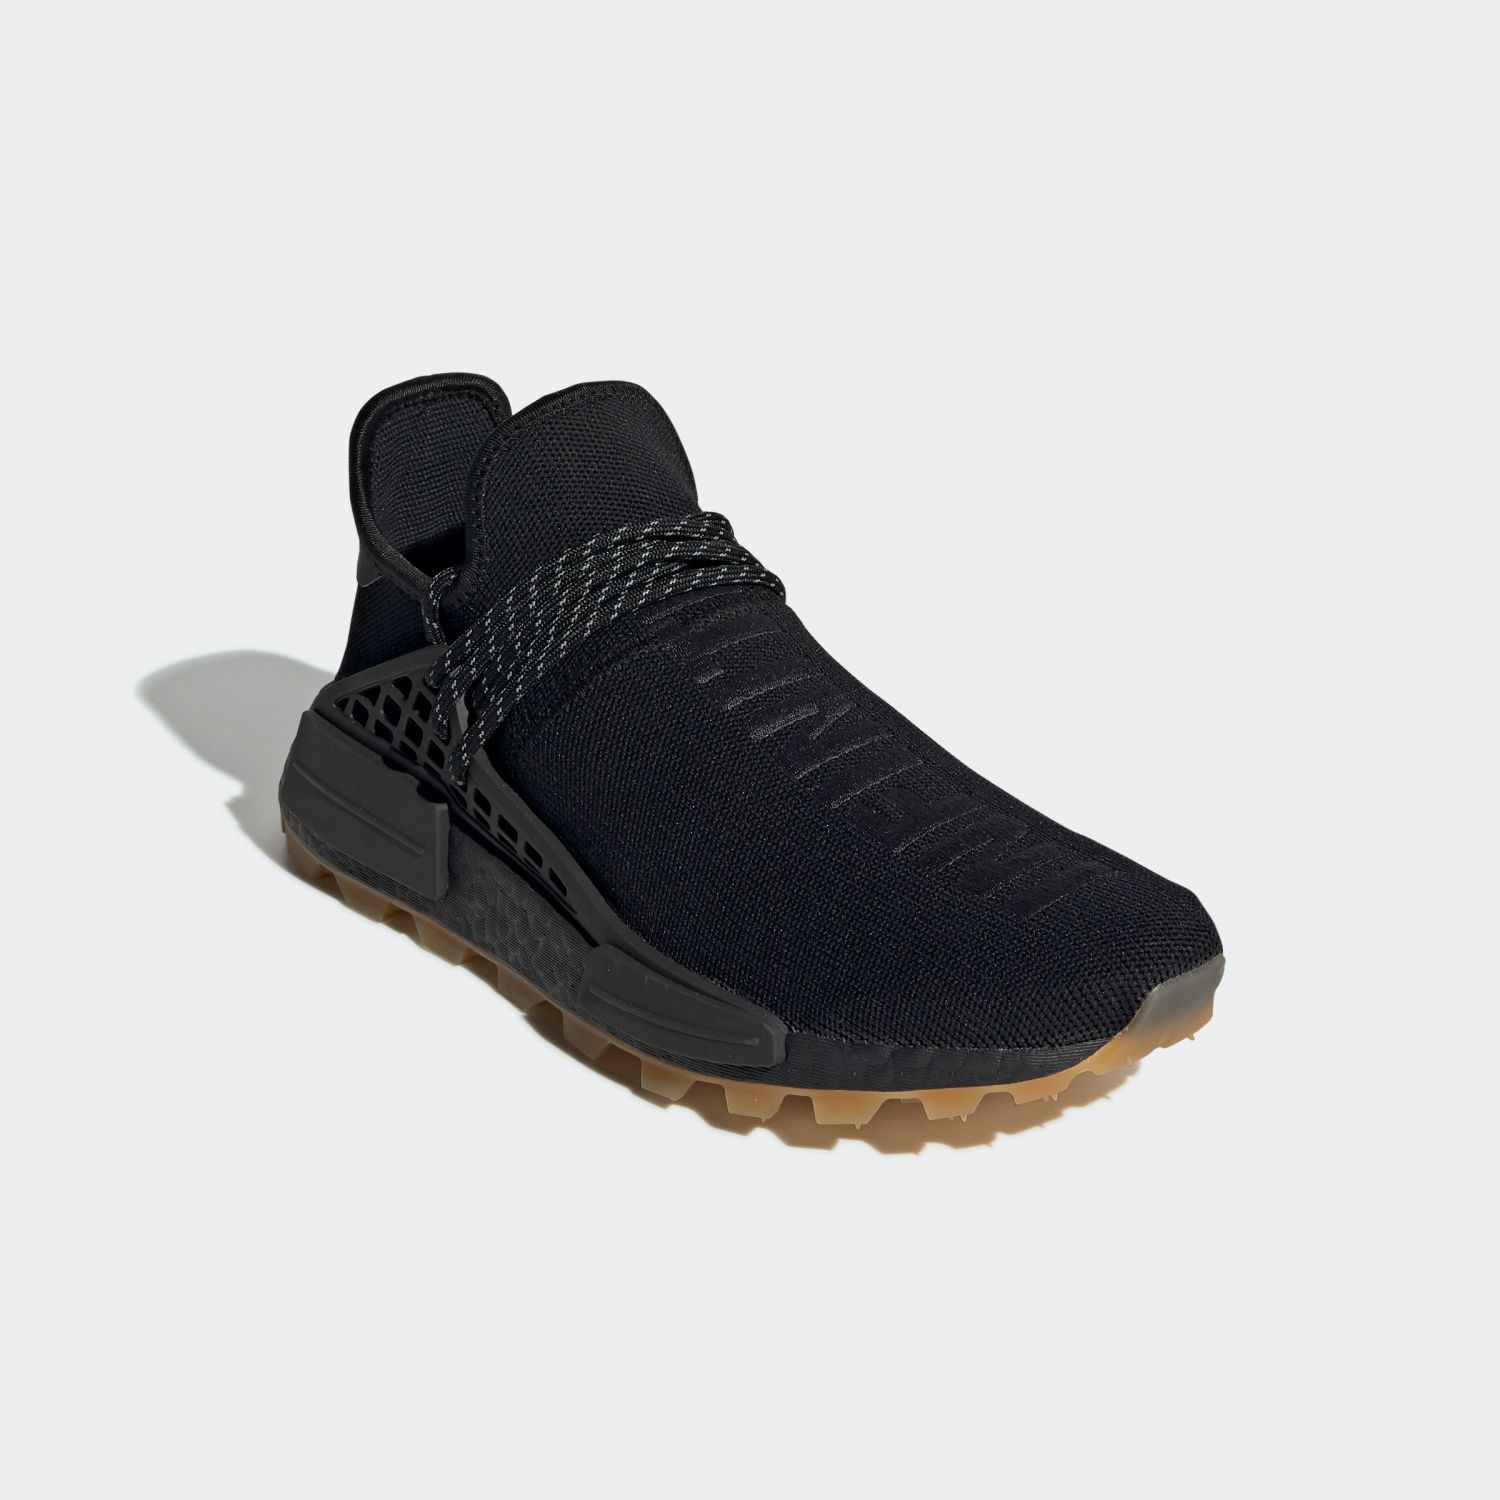 NMD Hu Trail Pharrell Now Is Her Time Black [4]